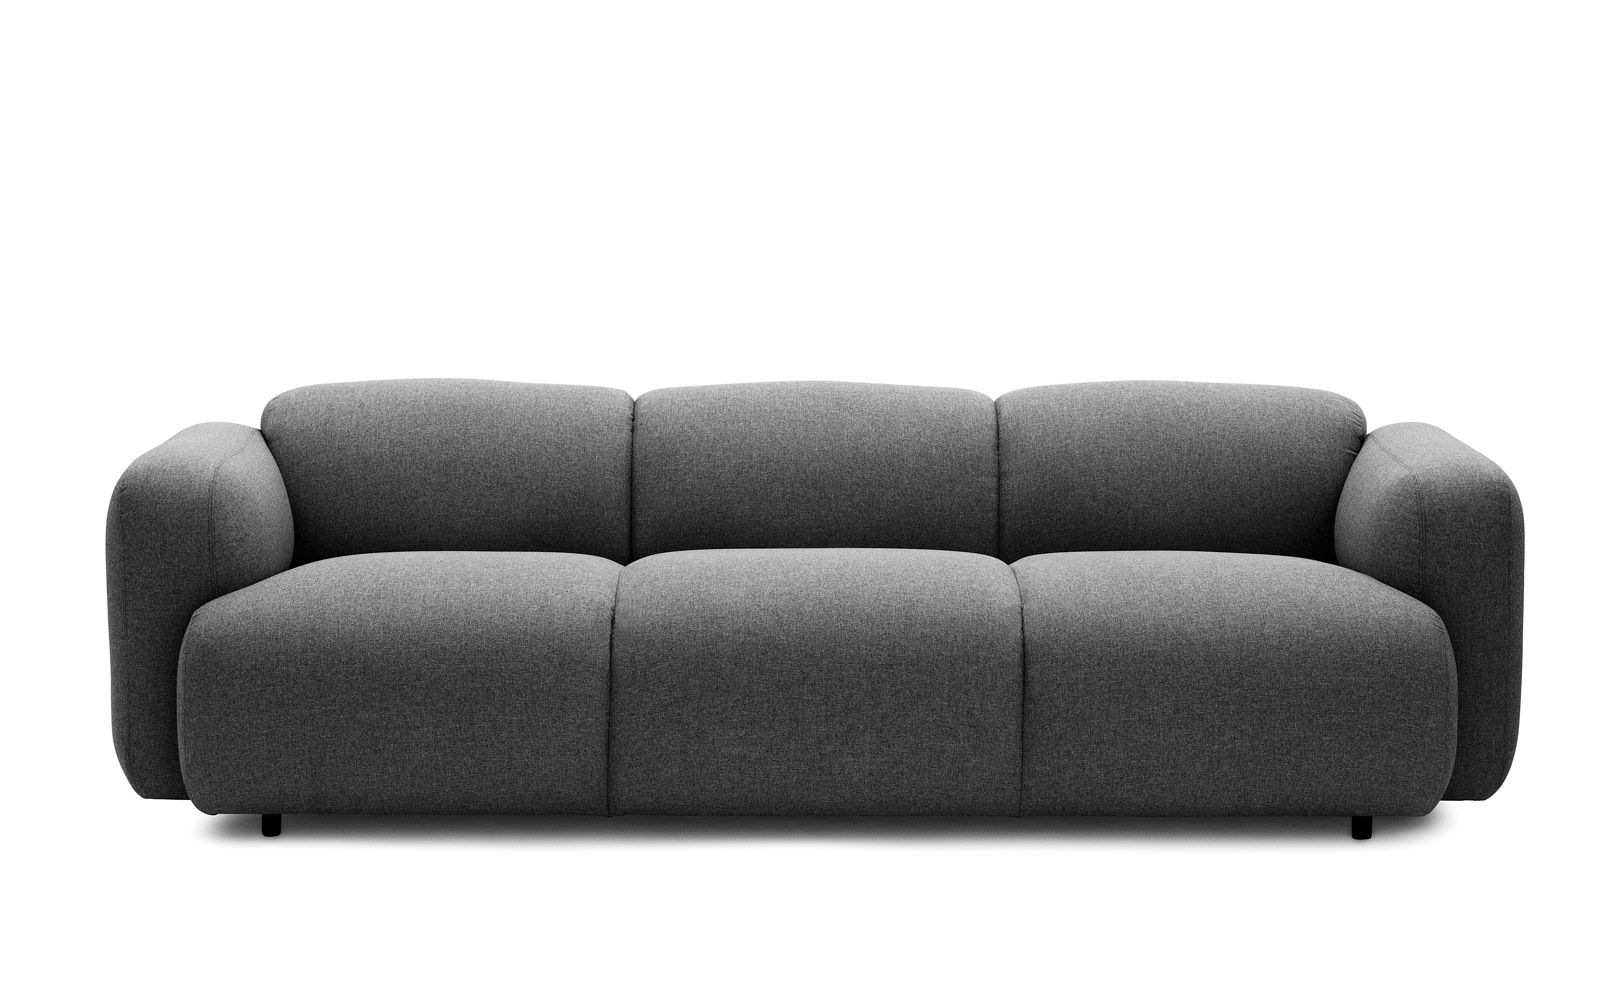 Swell oozes with character and personality and its soft, curved shapes make it both inviting and fantastic to sit on.